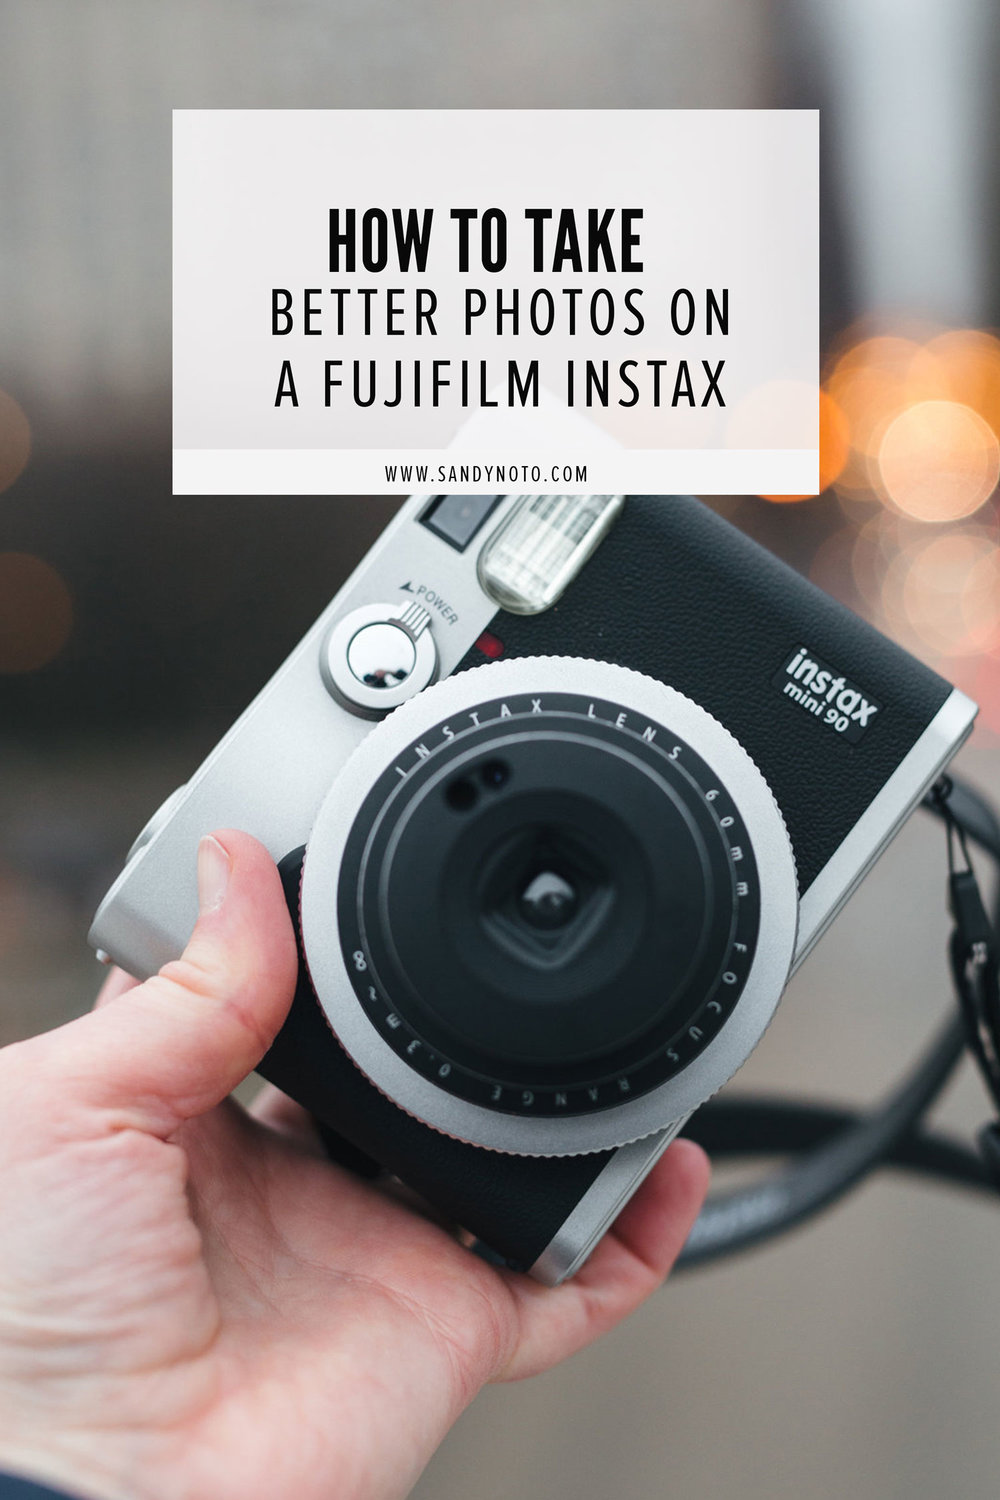 Taking better photos on the Fujifilm Instax